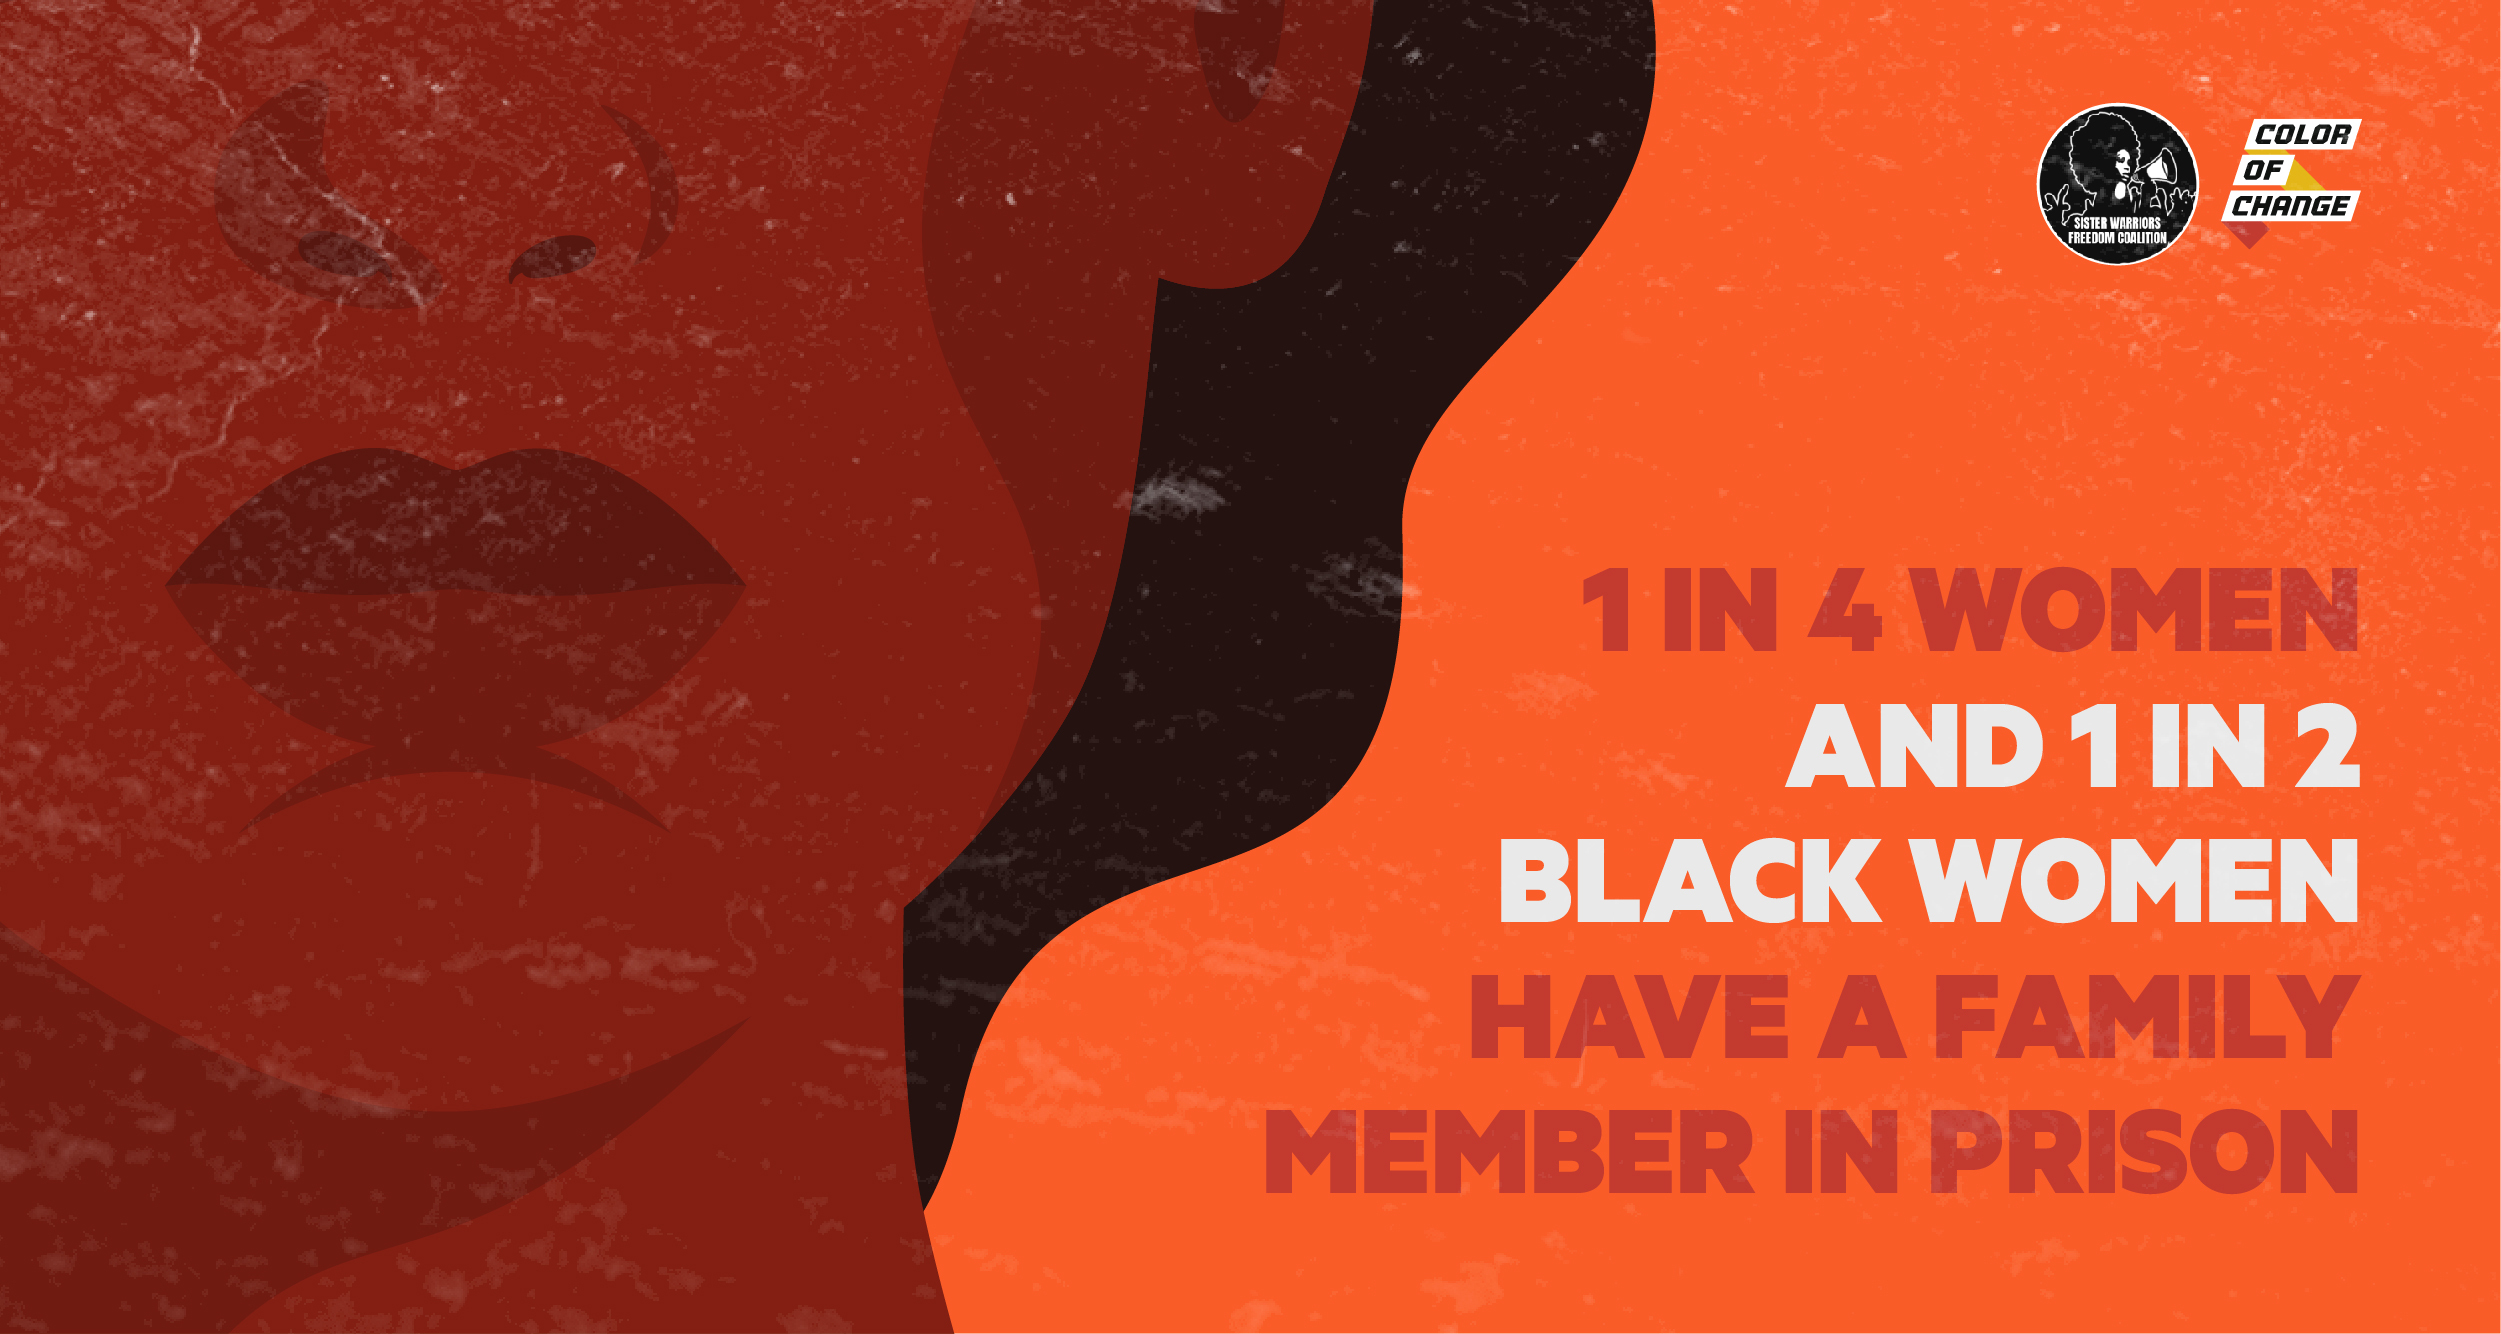 1 in 4 Women and 1 in 2 Black Women Have A Family Member in Prison